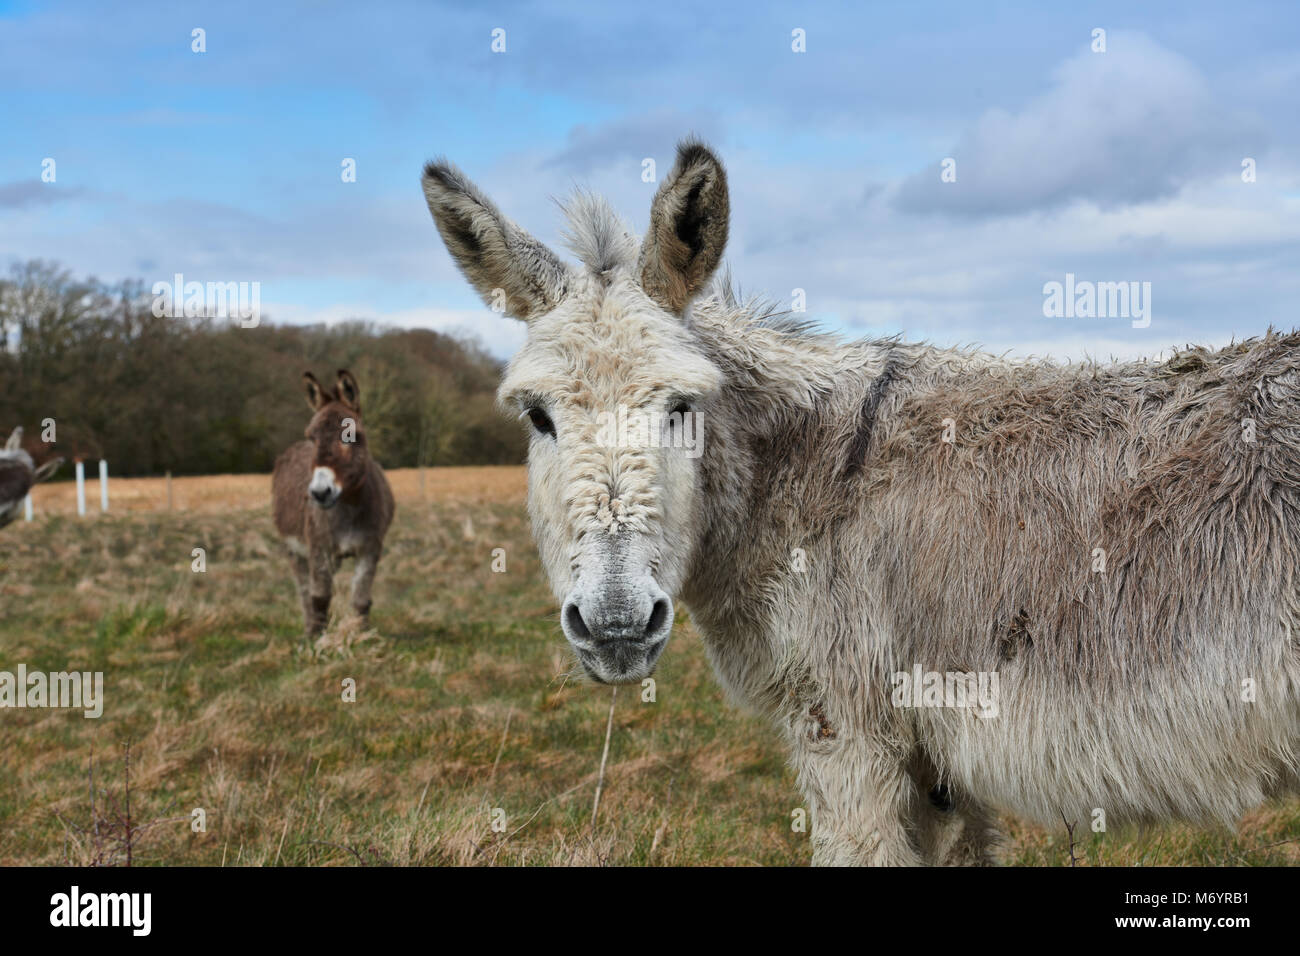 A pair of donkeys in a field in the New Forest area, the front donkey Is looking directly towards the camera, with - Stock Image